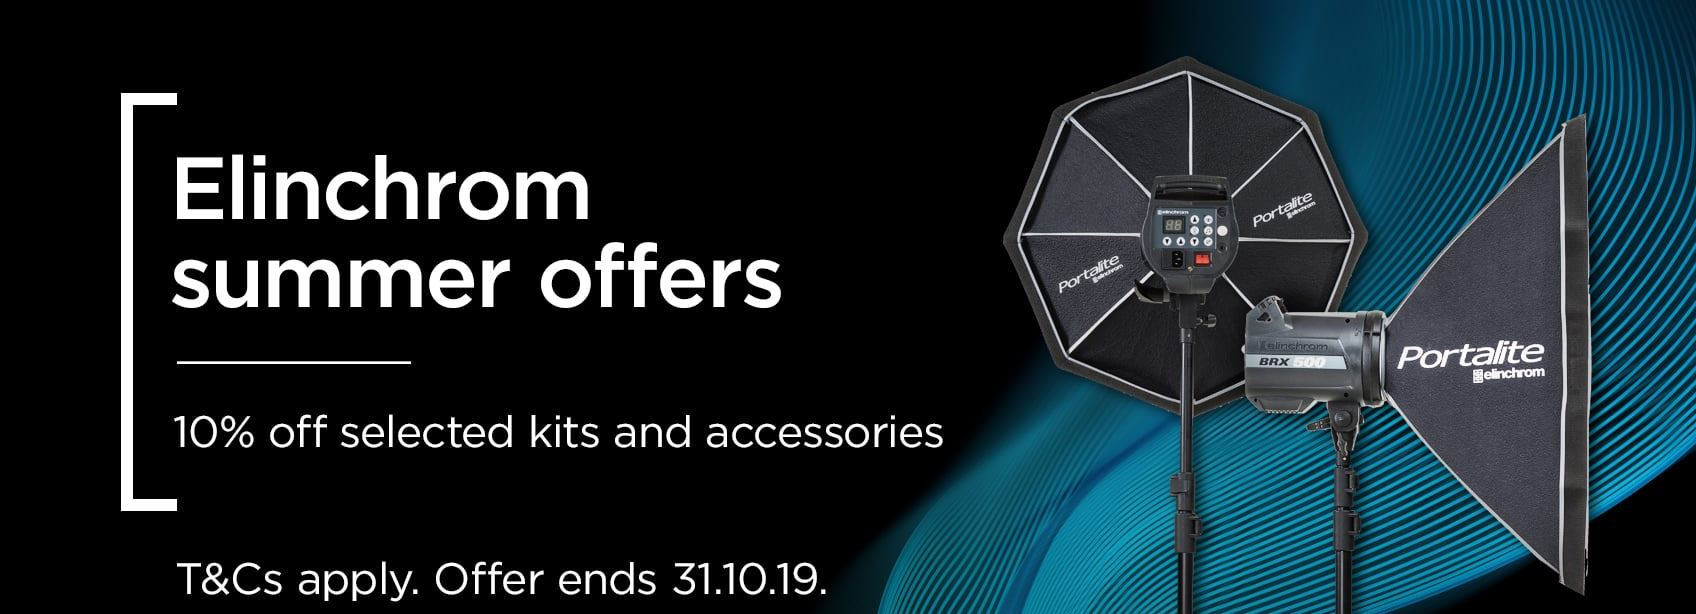 The latest offers from Elinchrom| 10% off on selected kits & accessories